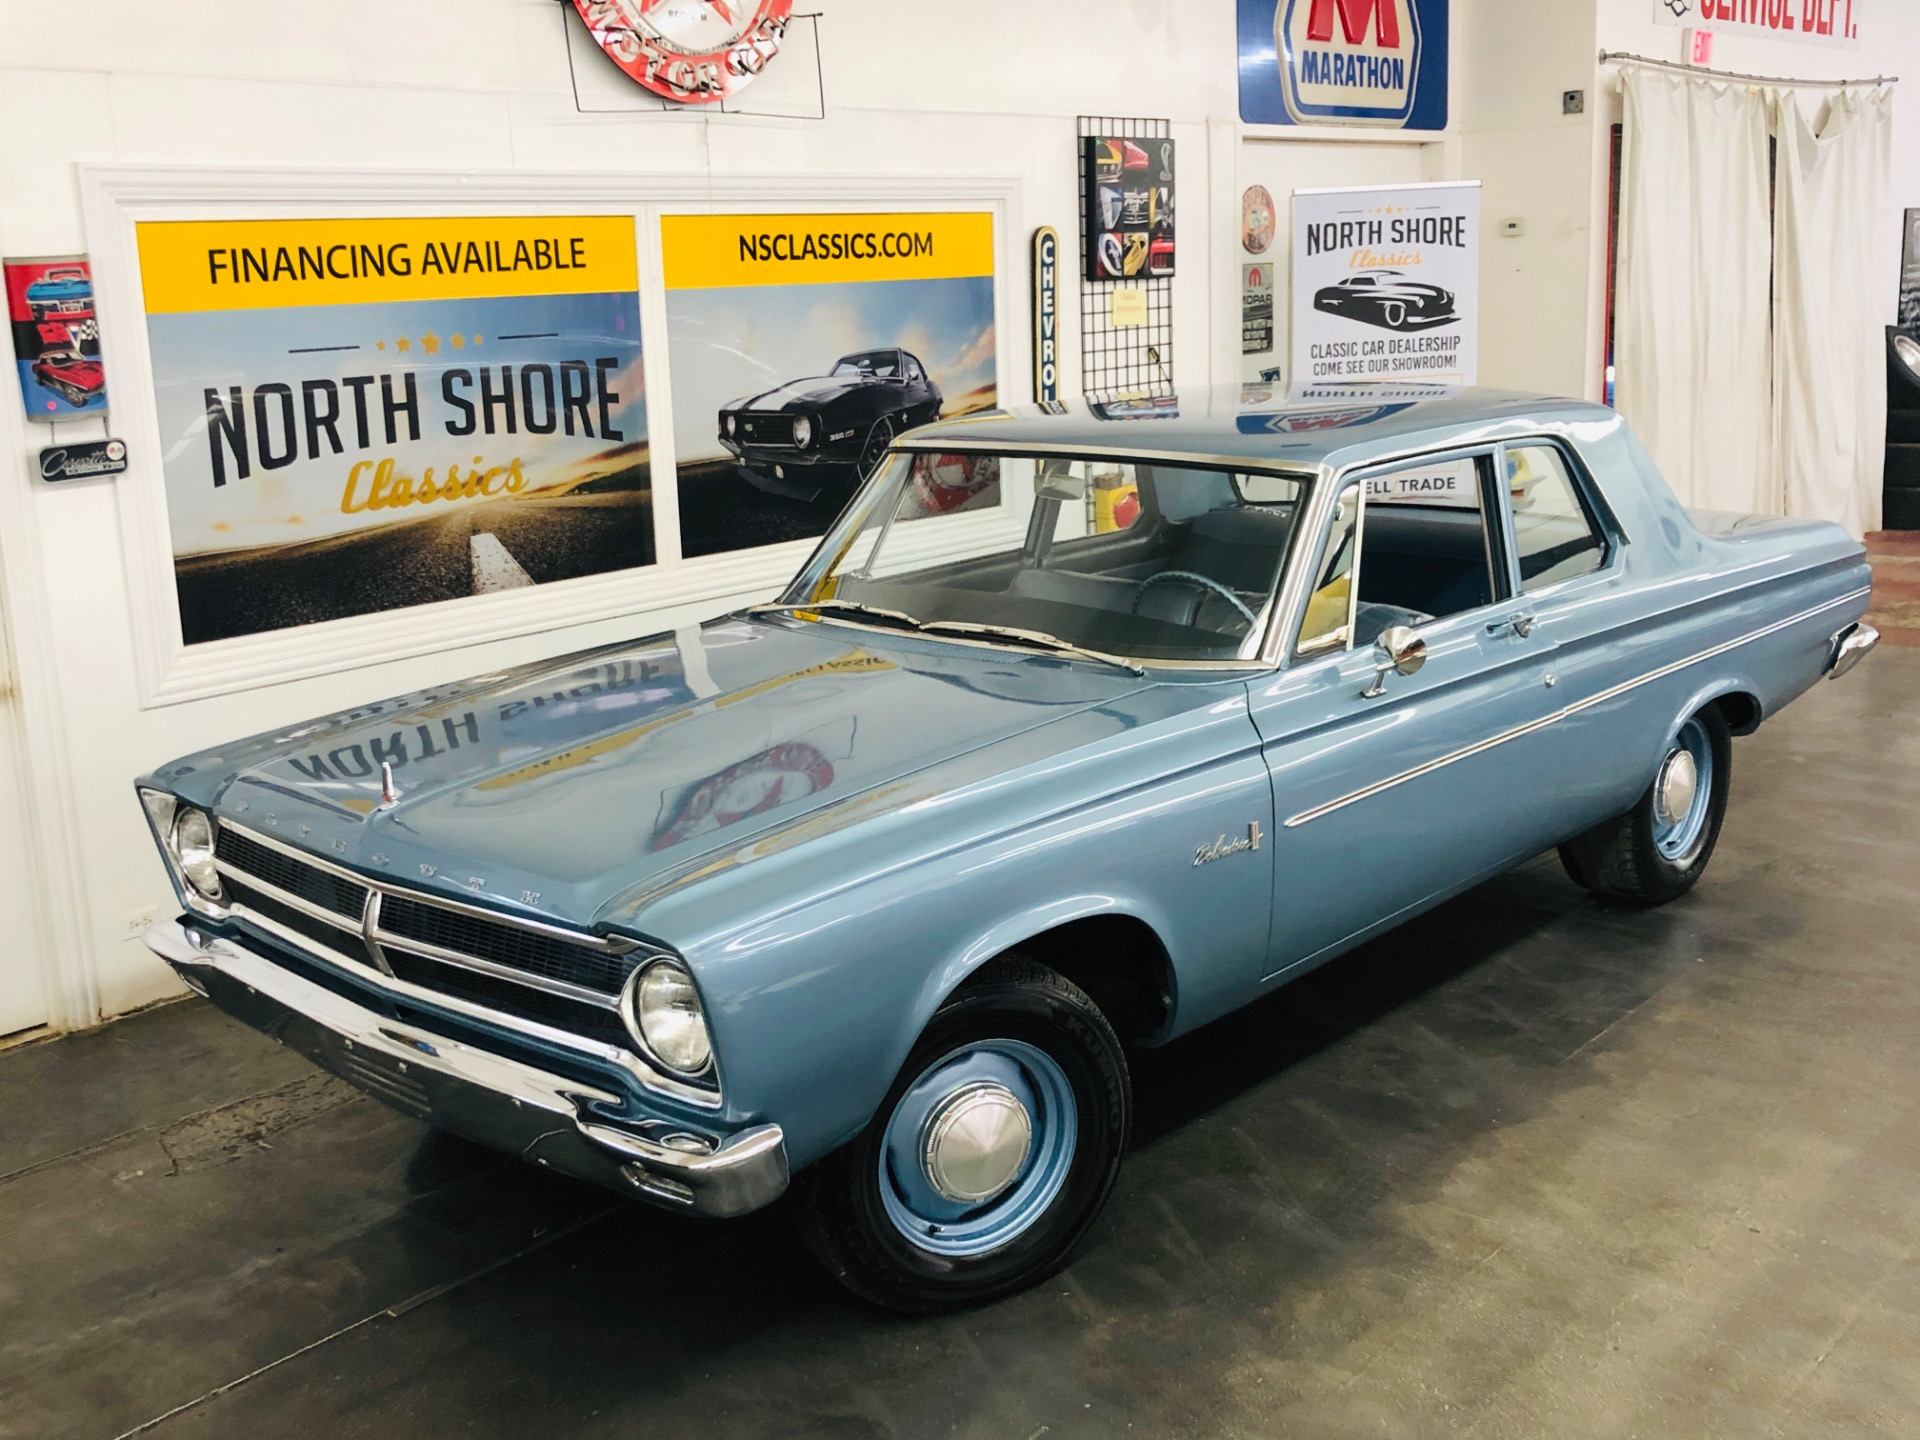 Used 1965 Plymouth Belvedere - 426 COMMANDO ENGINE - ORIGINAL SHEET METAL - 4 SPEED - SEE VIDEO | Mundelein, IL